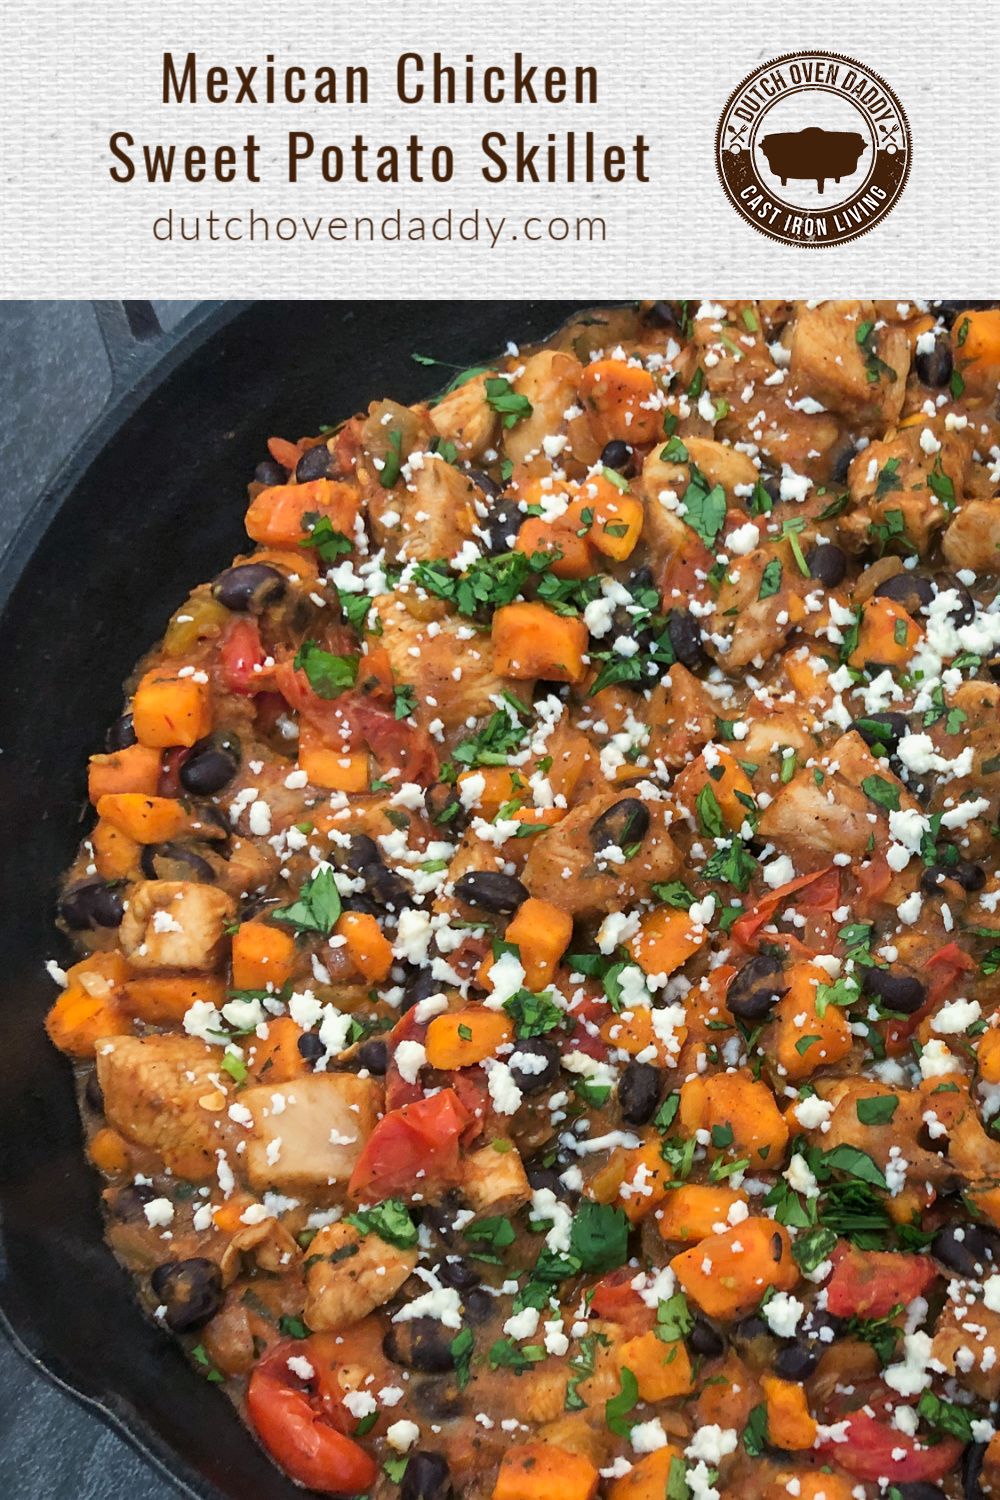 Mexican inspired skillet dinner with chicken, sweet potatoes, black beans, tomatoes, garnished with cilantro and queso fresco.